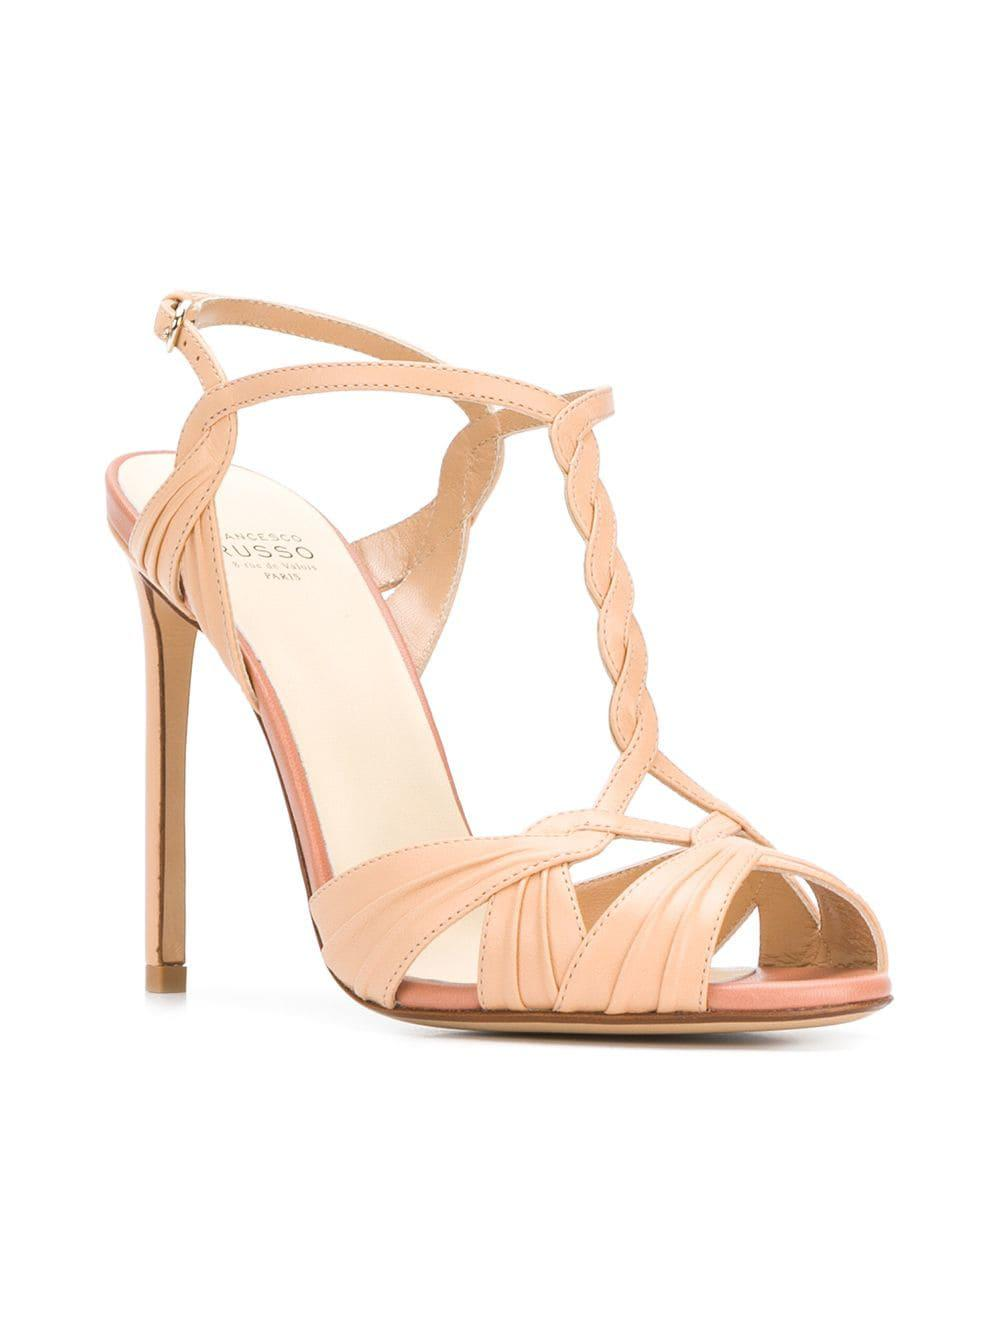 0bfdd4ad002a Francesco Russo - Multicolor Ankle Strap Sandals - Lyst. View fullscreen